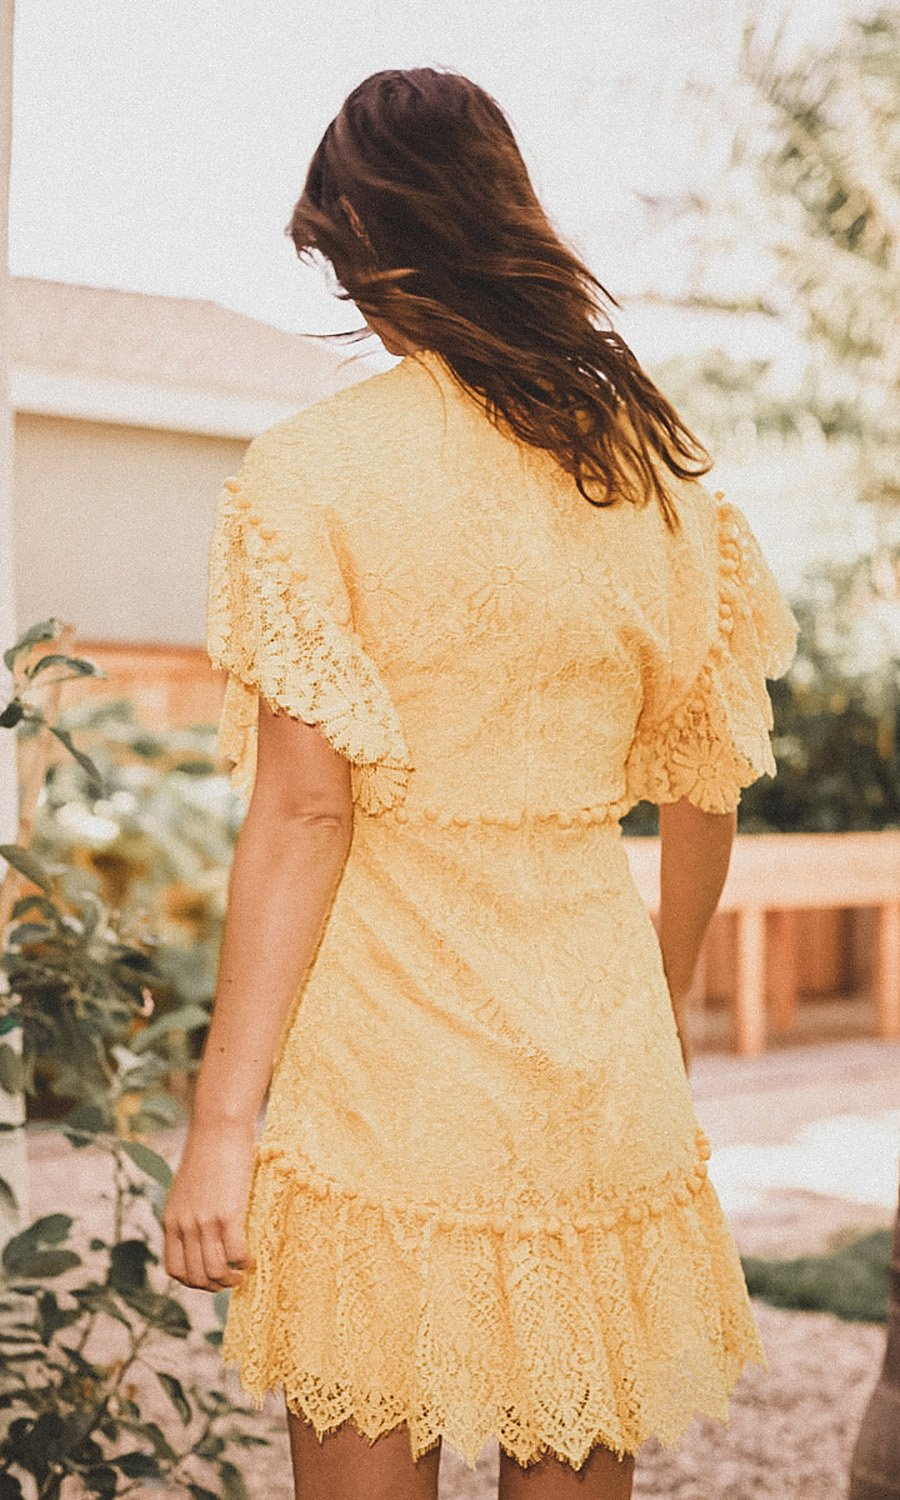 Saylor Nanatte Mini Dress in Yellow